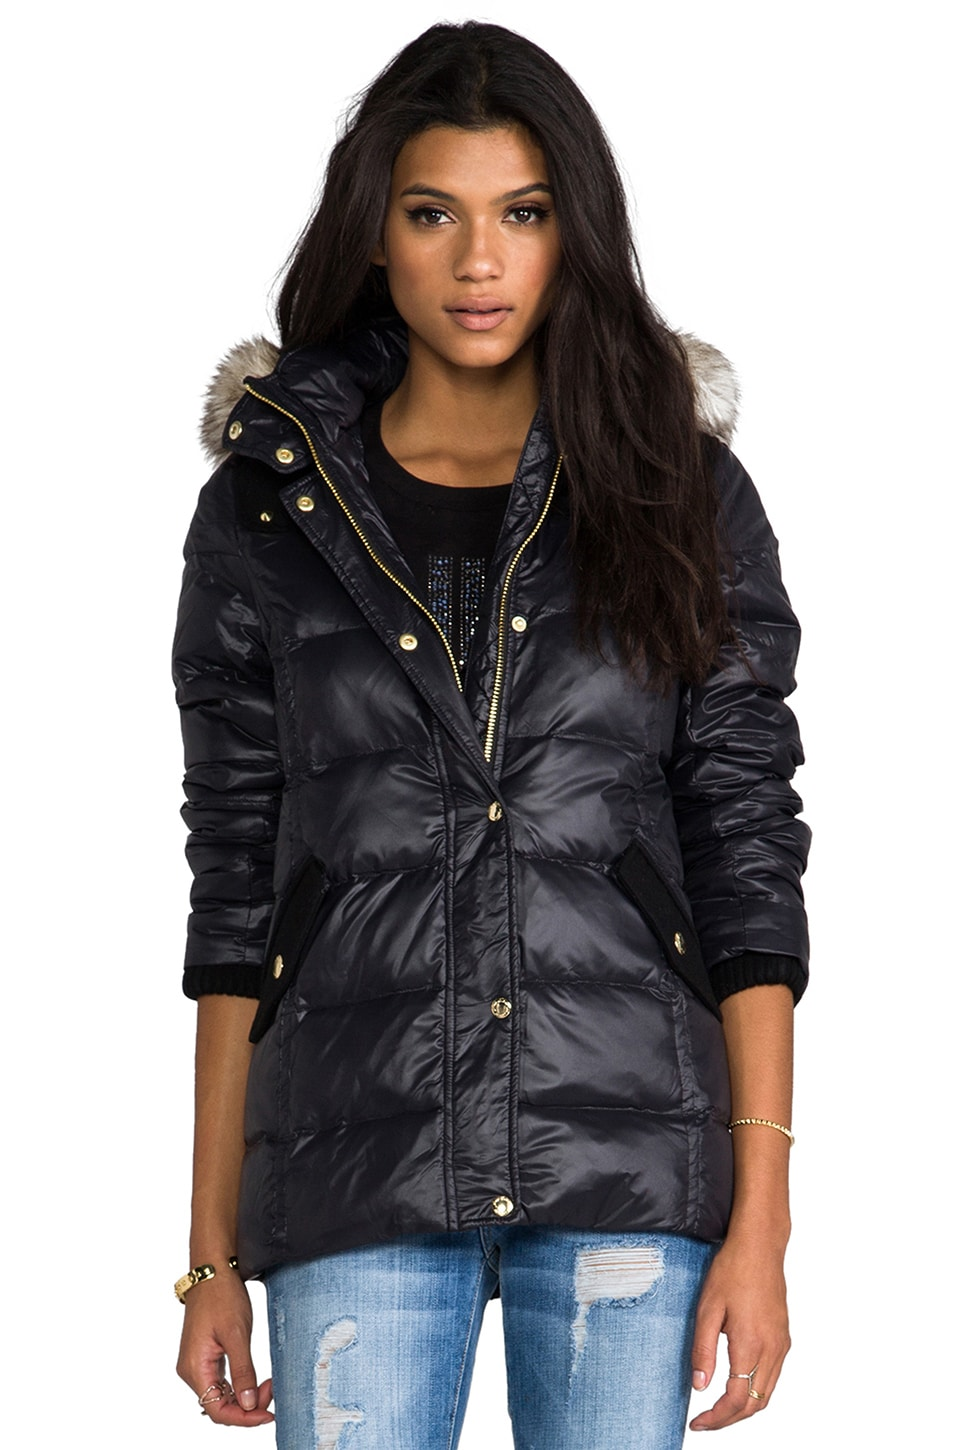 Juicy Couture Long Puffer Jacket w/ Faux Fur in Pitch Black